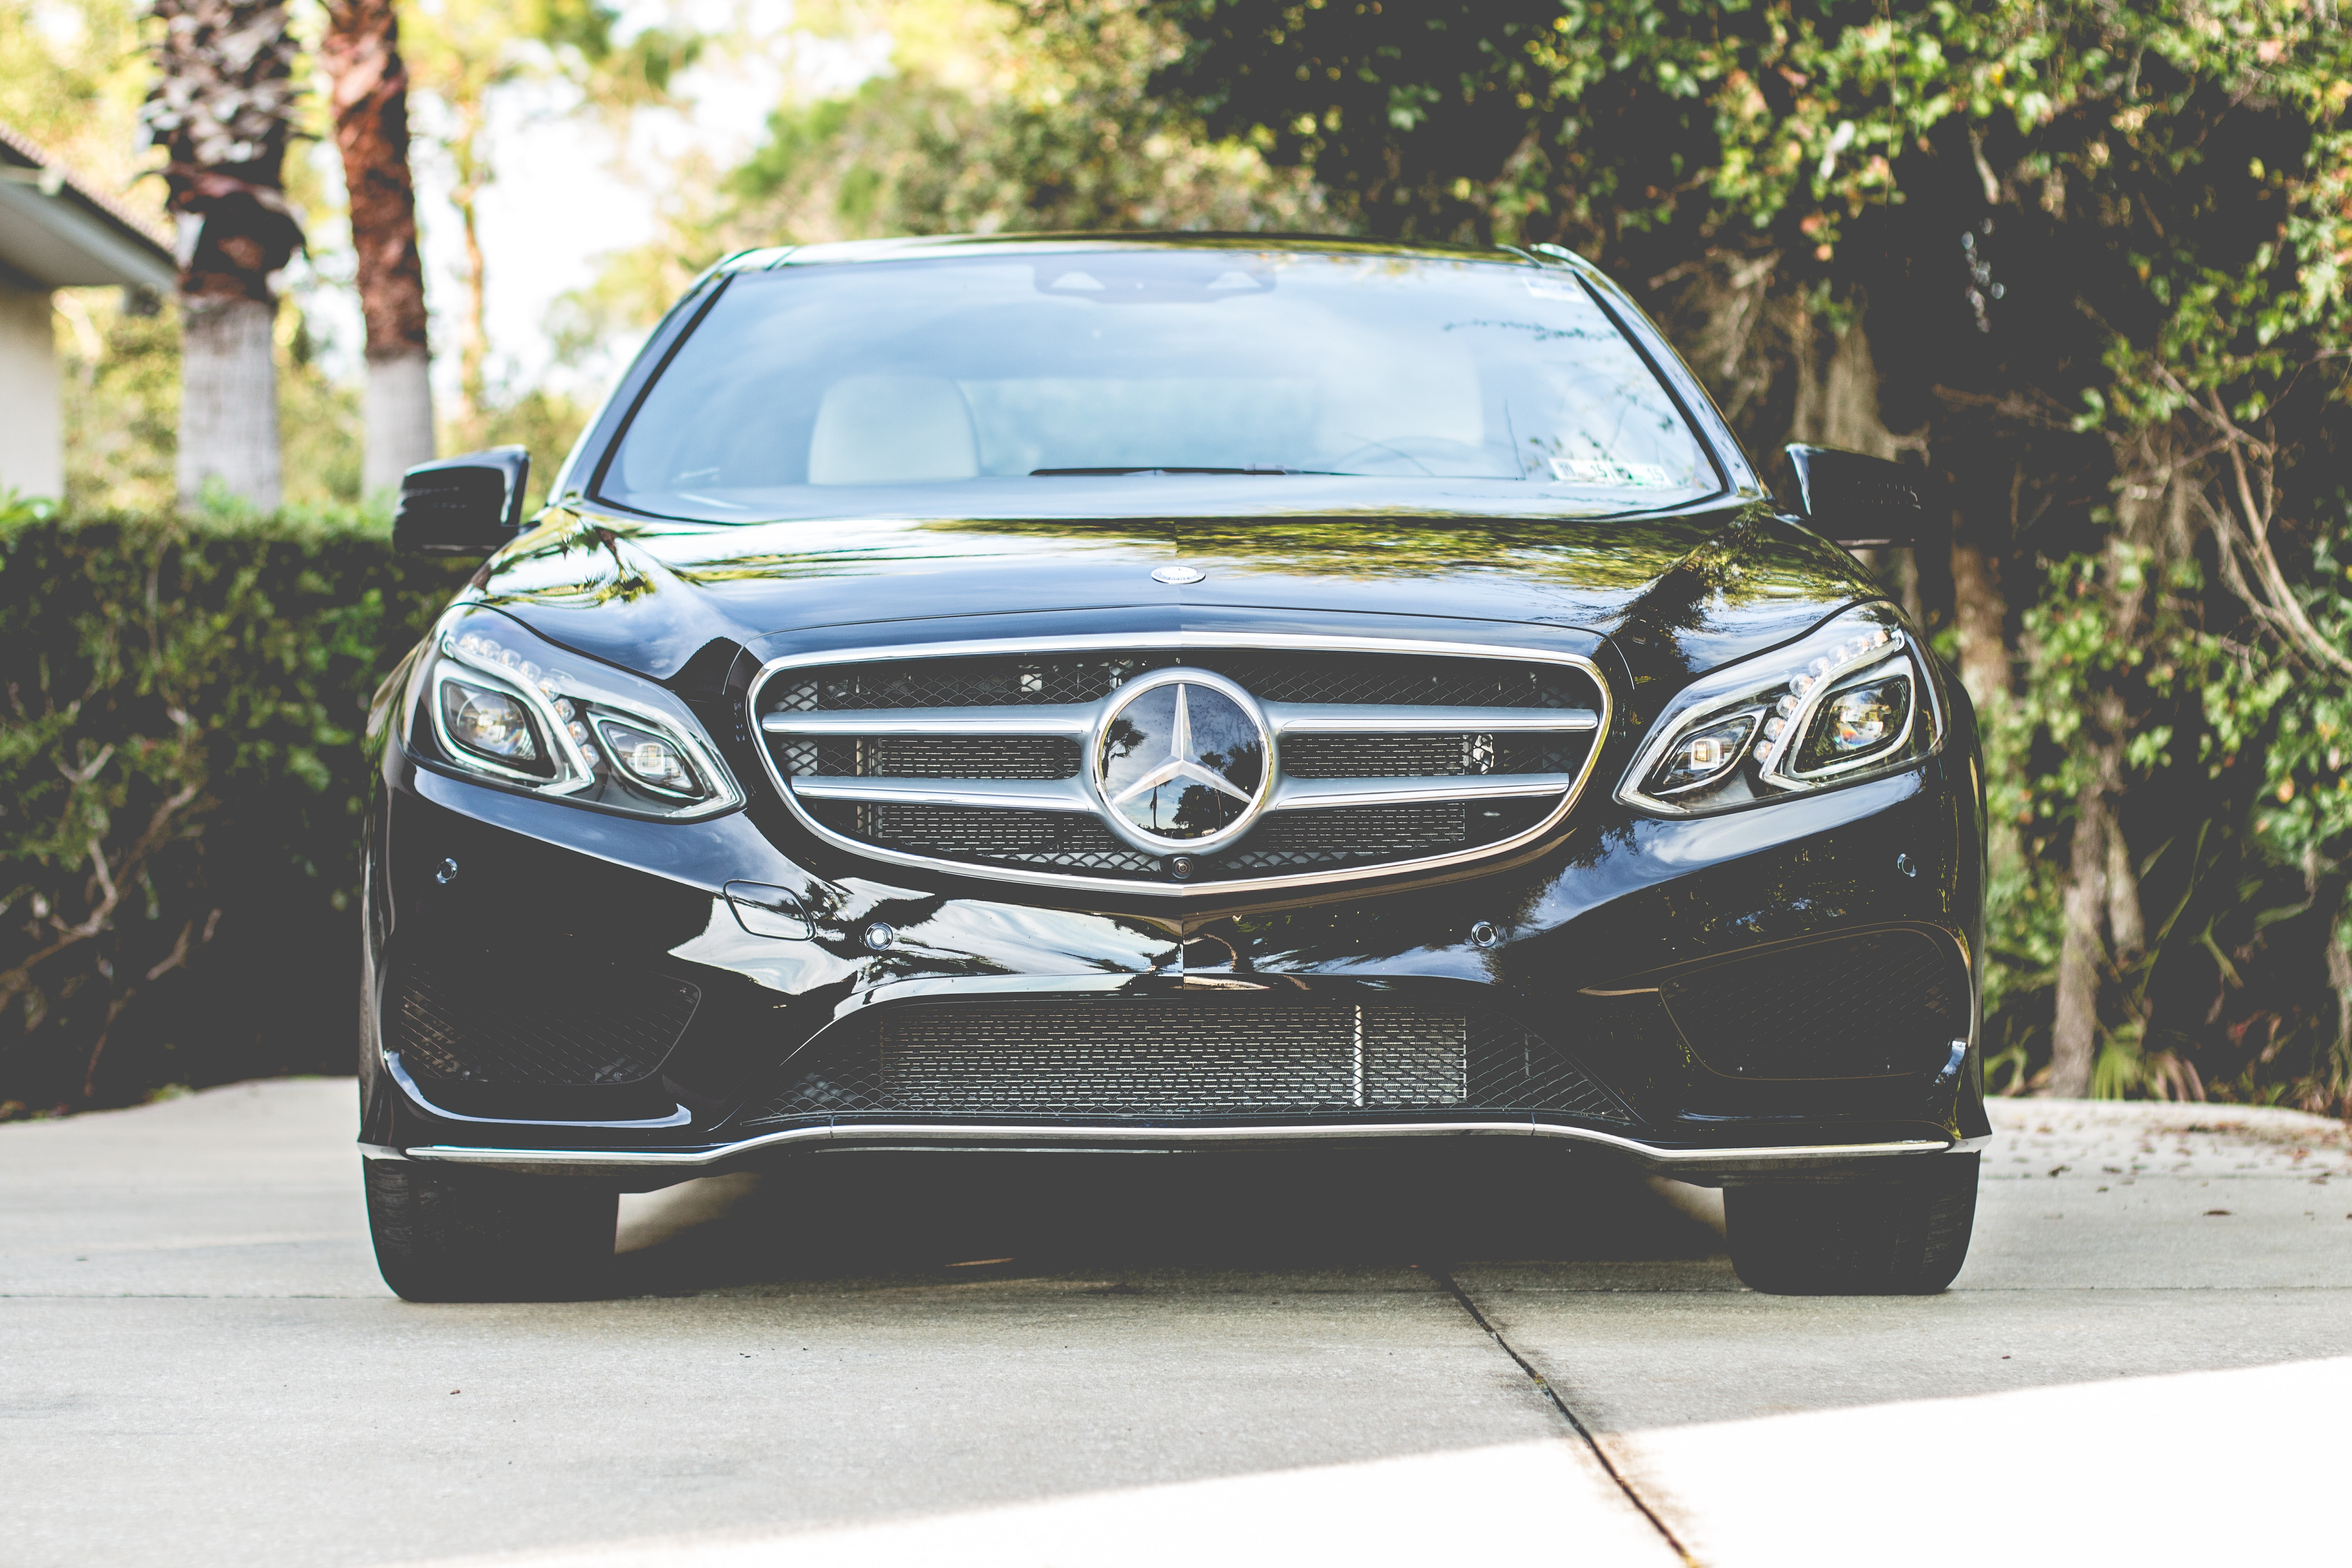 Front of the new luxury black Mercedes-Benz parked in a driveway.